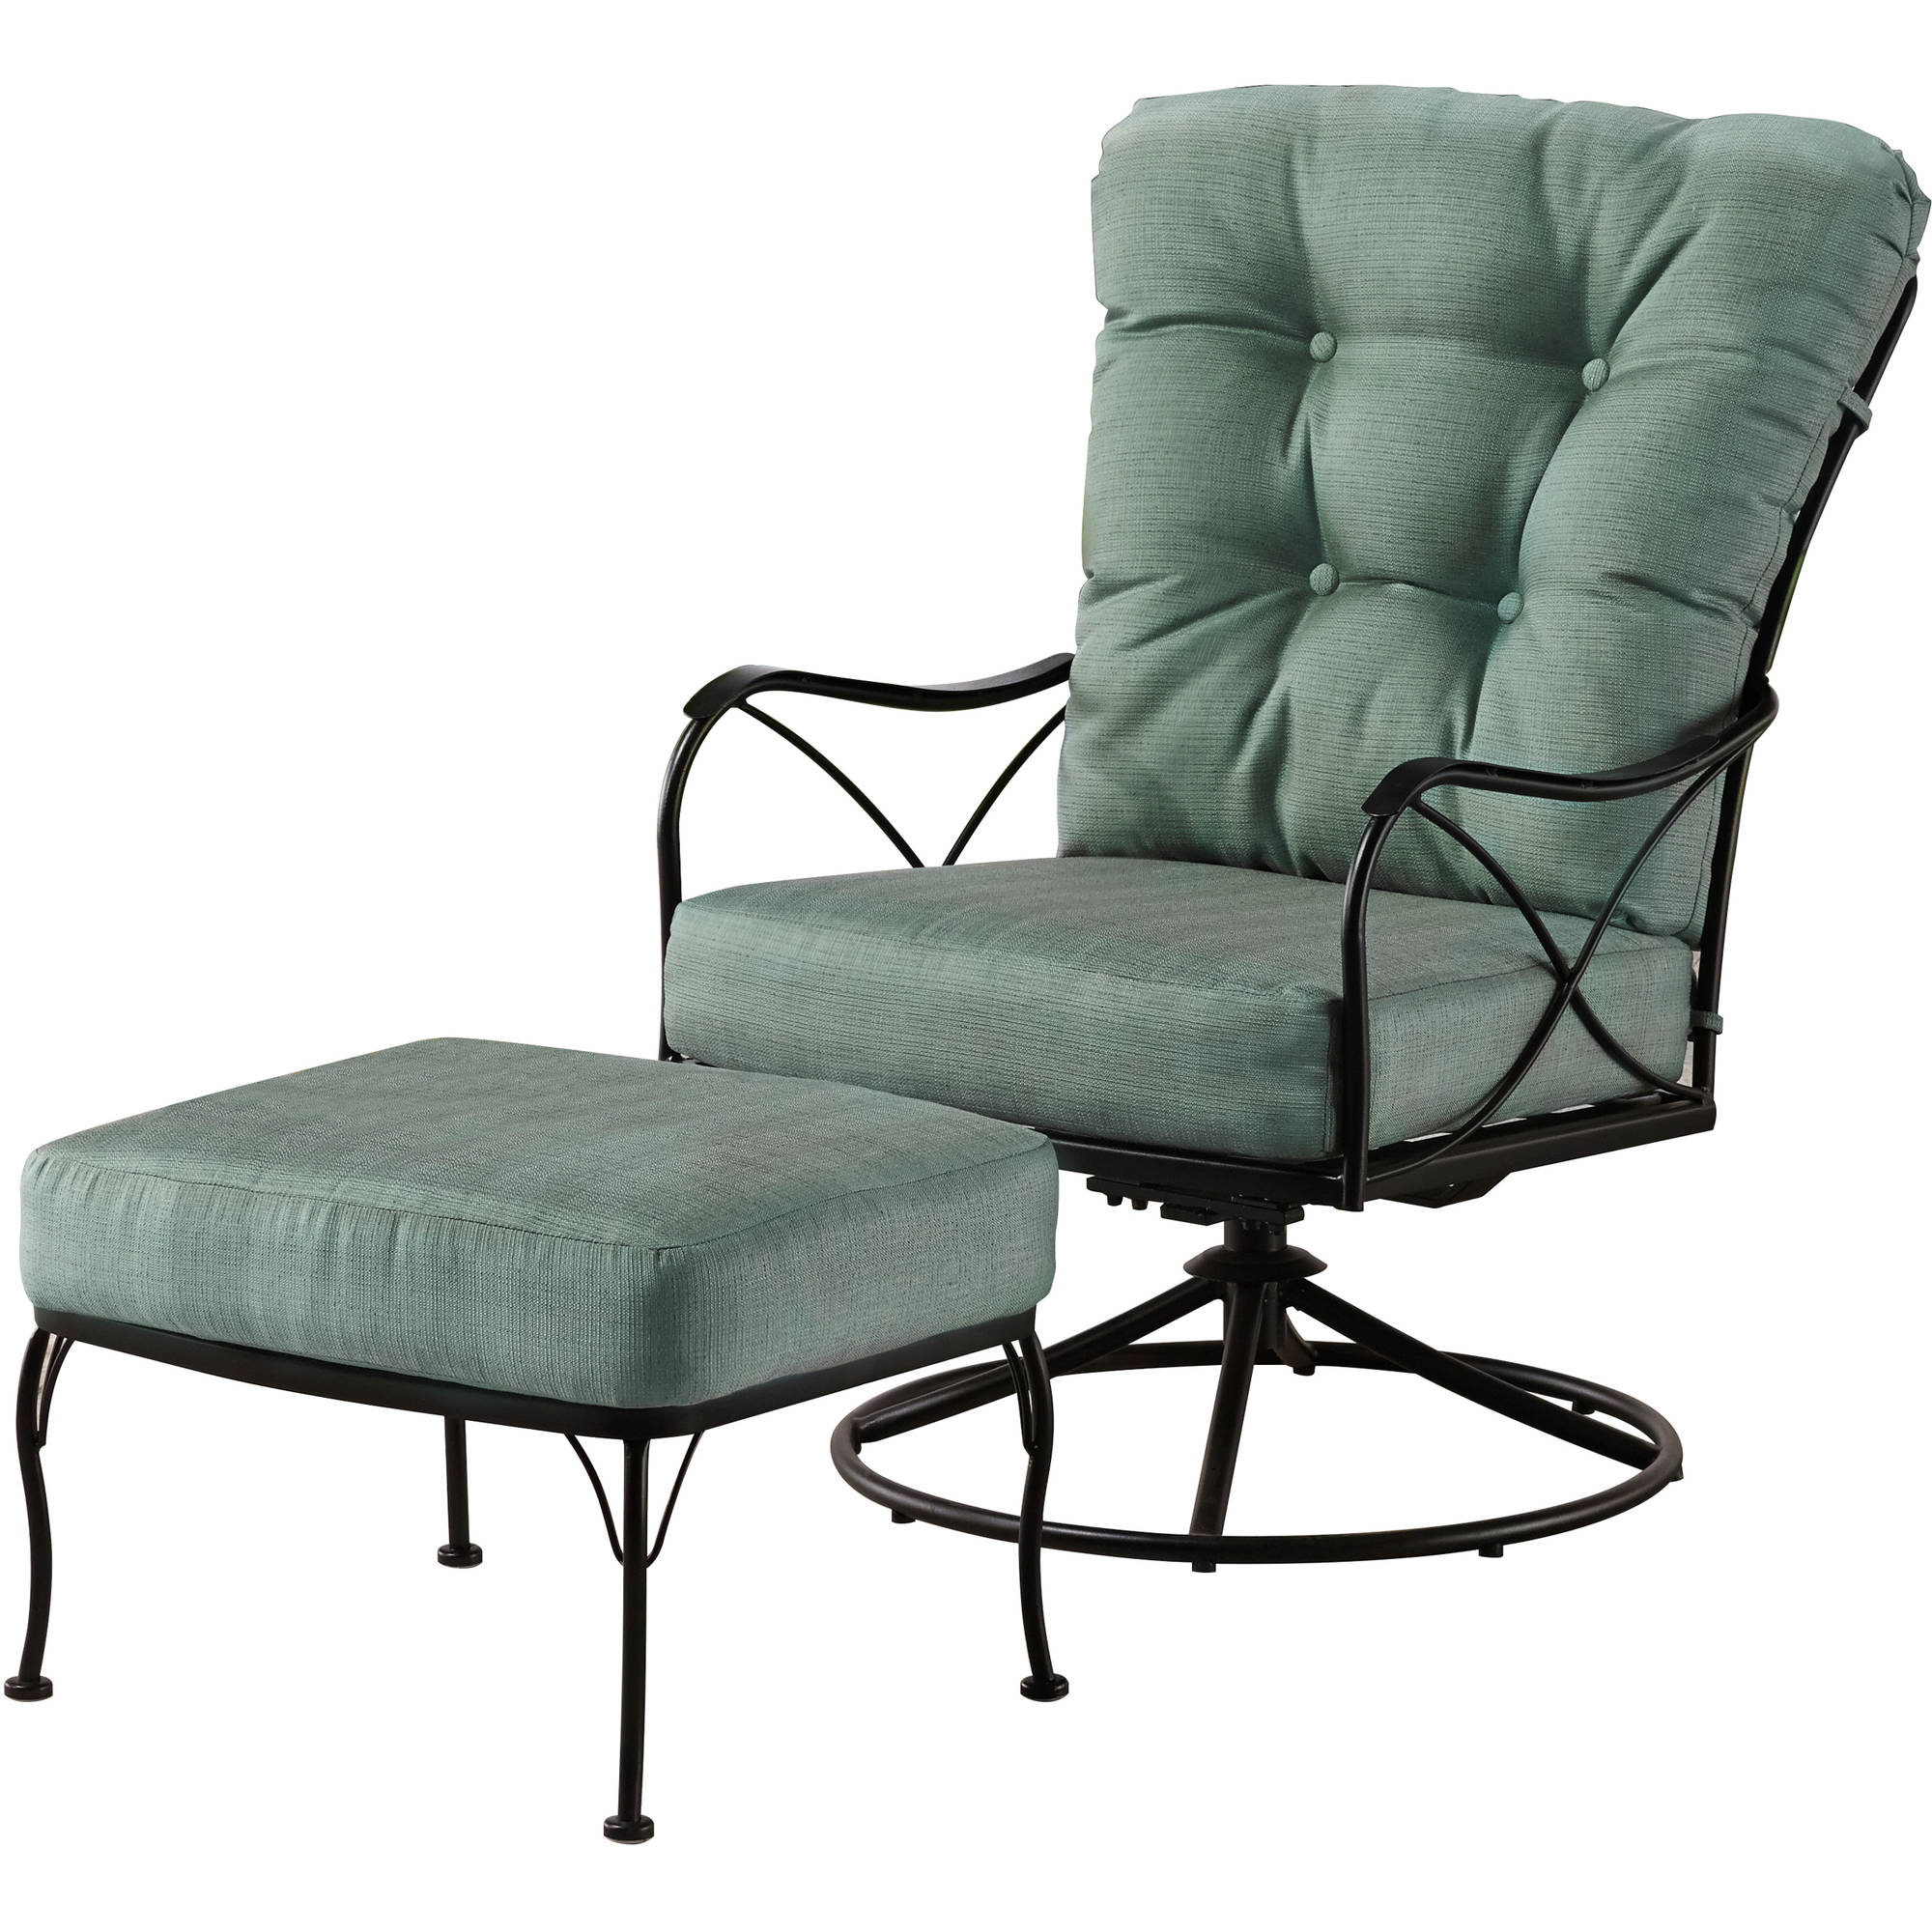 Better Homes And Gardens Seacliff Oversized Cuddle Chair With Ottoman   Walmart